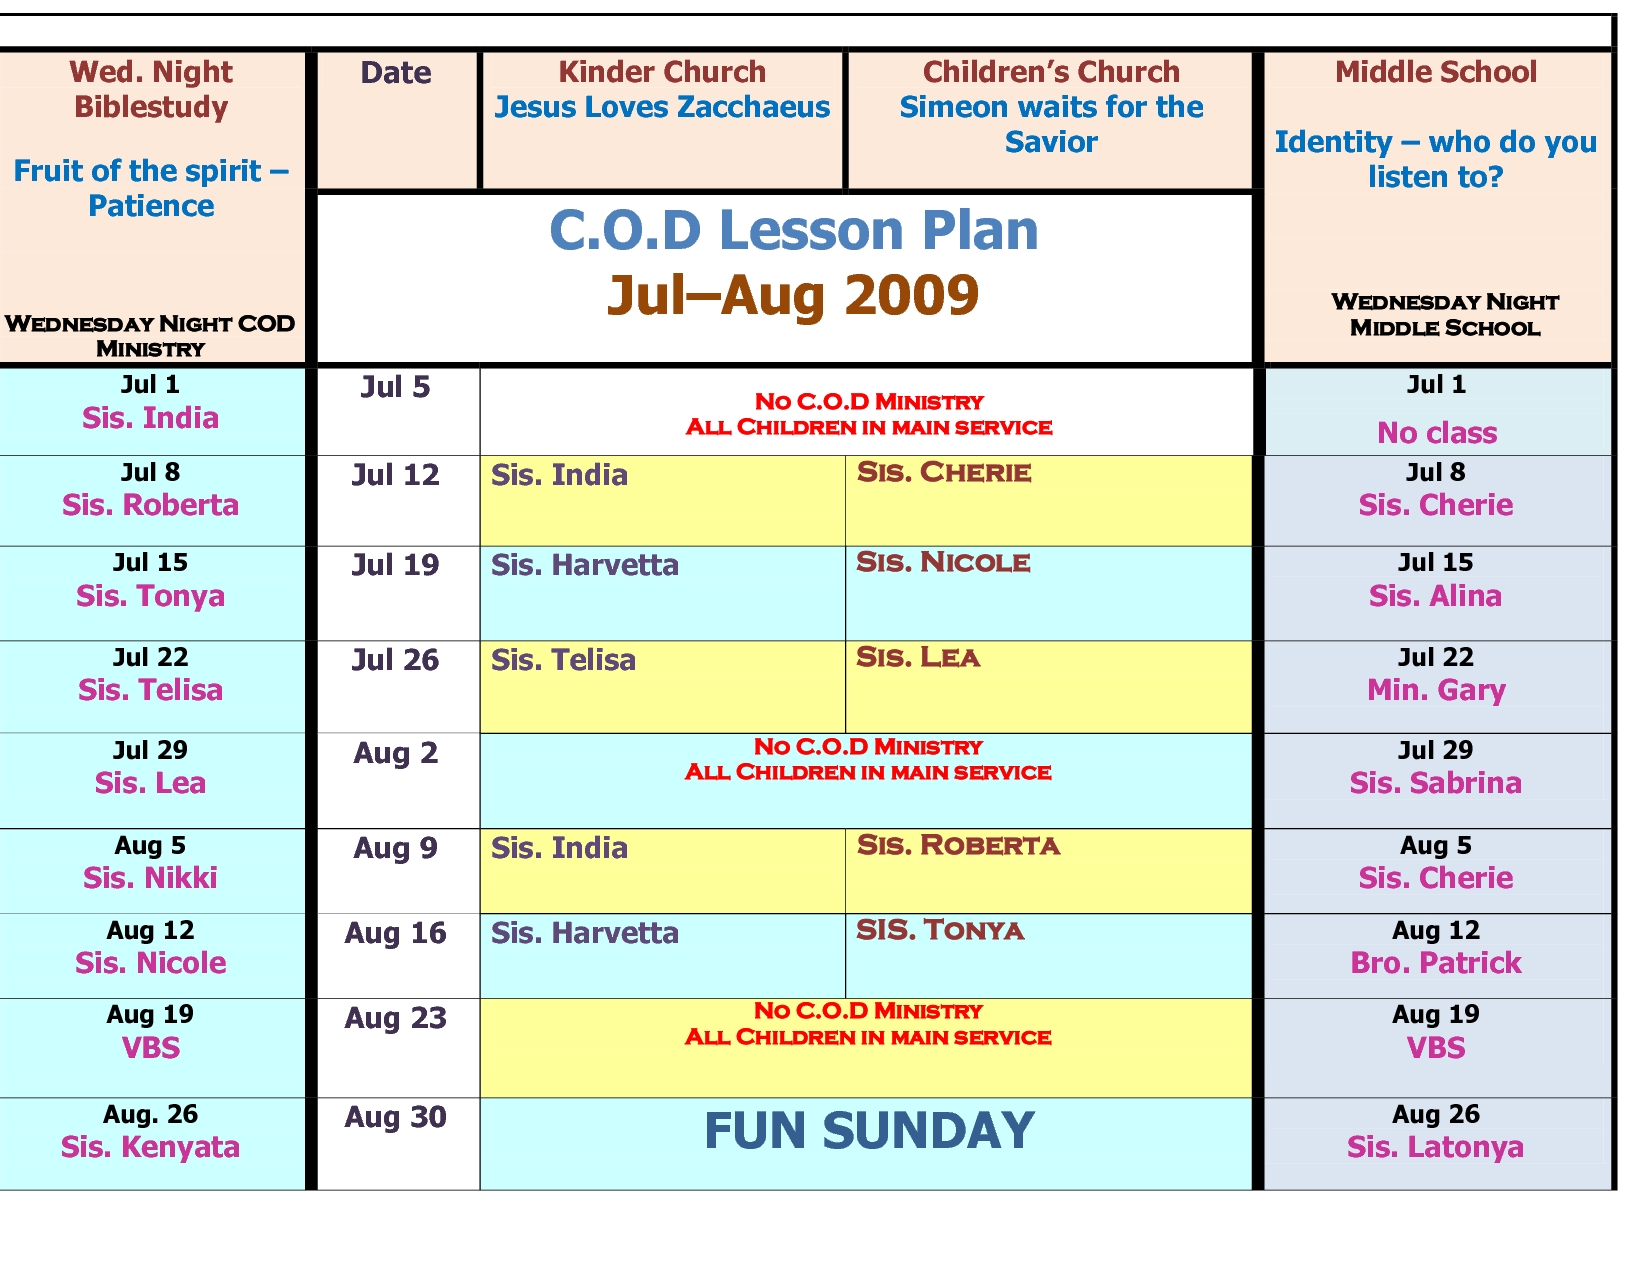 Children's Church Schedule Template - Google Search  Calendar Templates For Churches